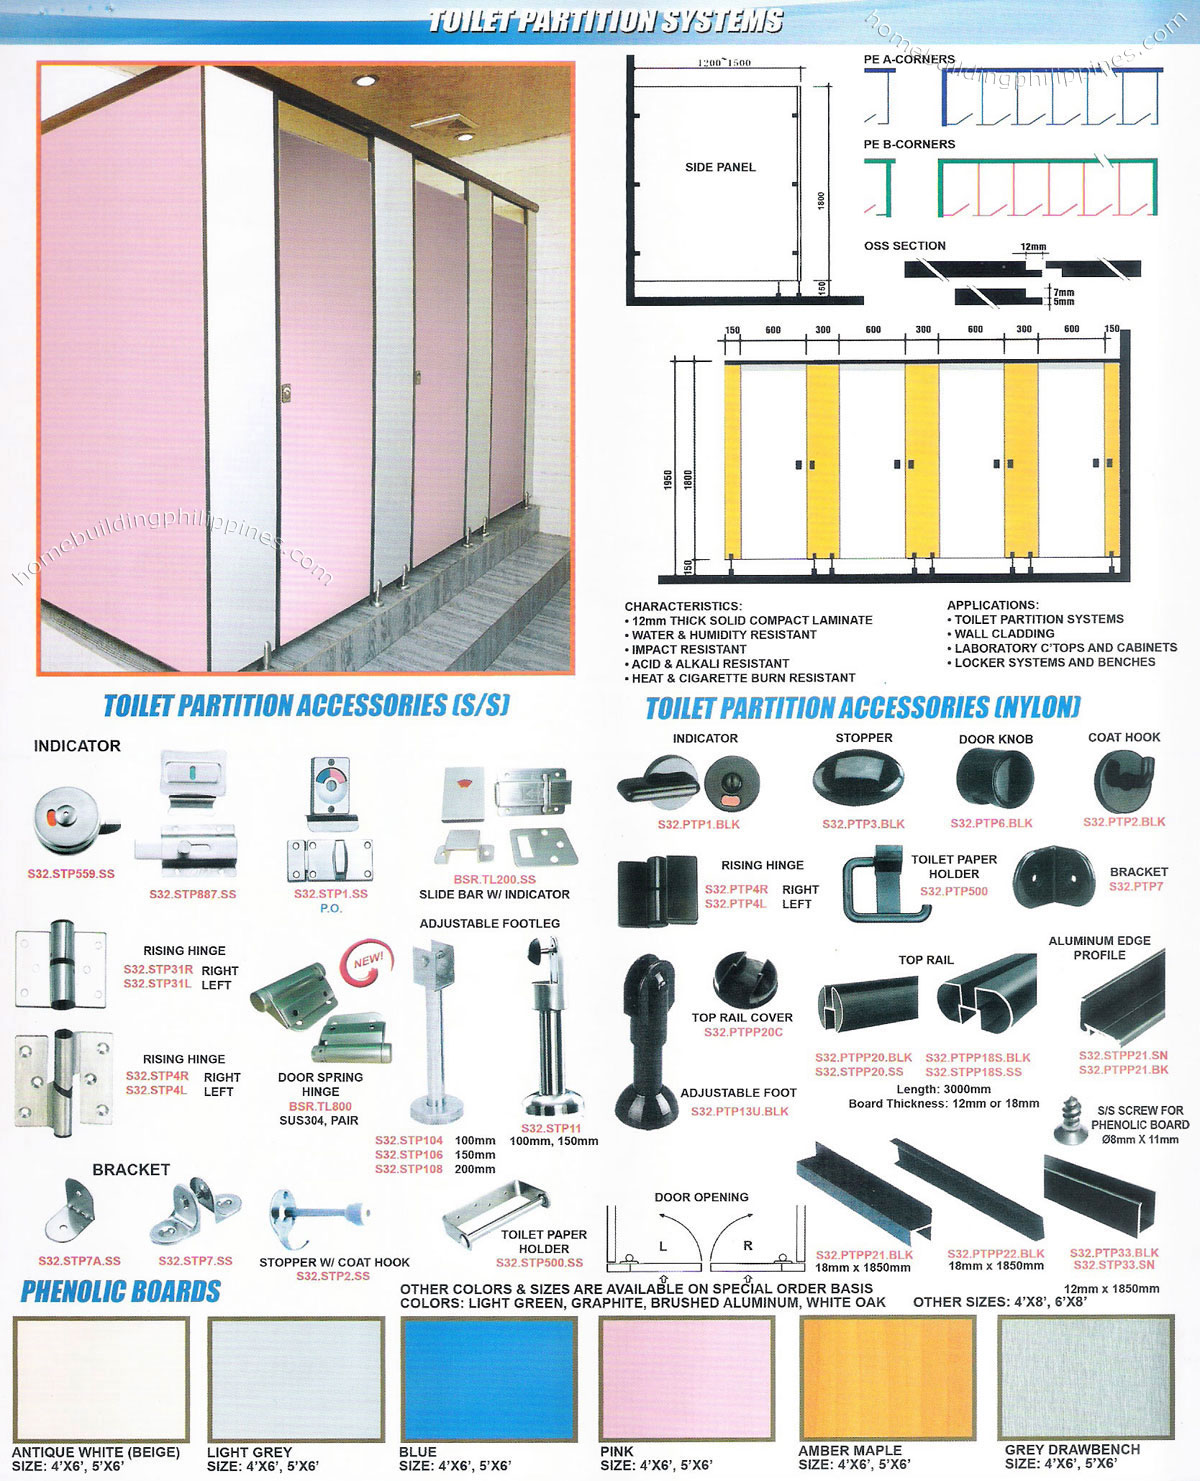 Toilet Partition Systems Accessories Philippines